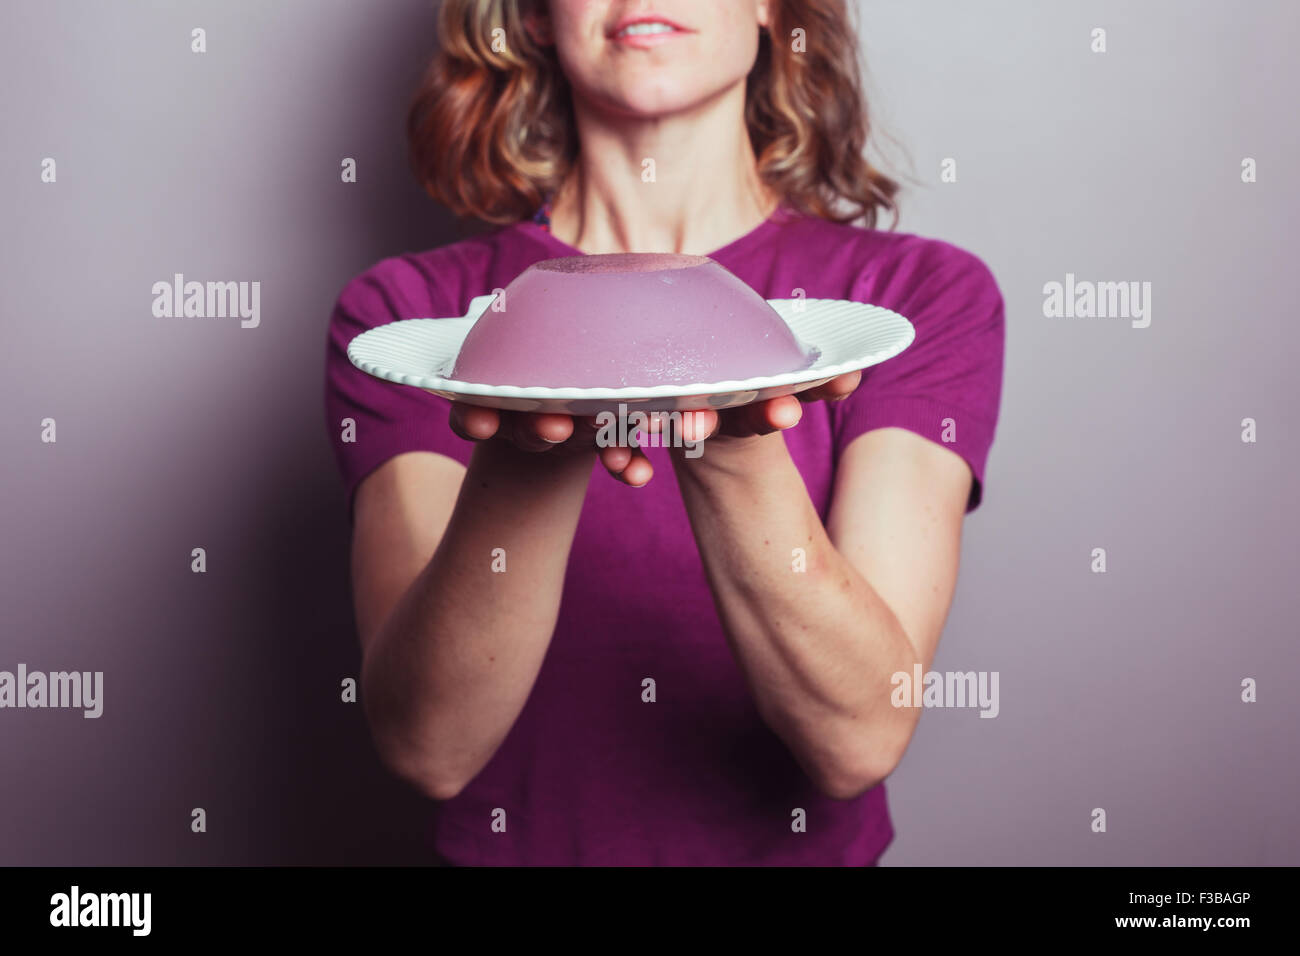 A young woman in a purple top is presenting a plate of jelly - Stock Image